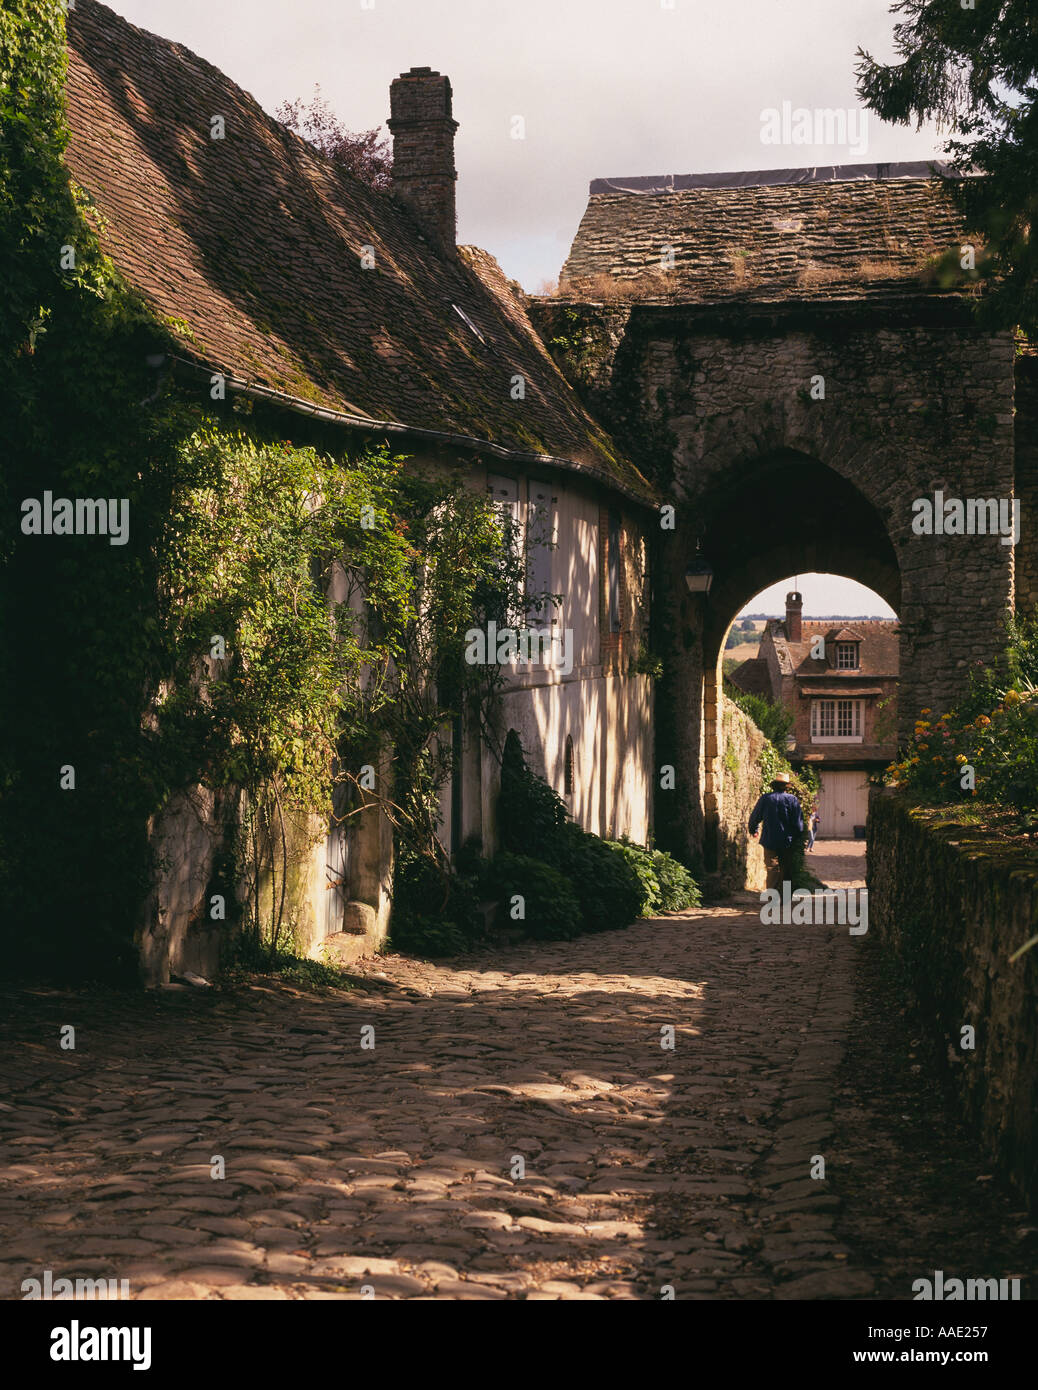 COBBLED RURAL VILLAGE STREET GERBEROY PICARDY FRANCE Stock Photo